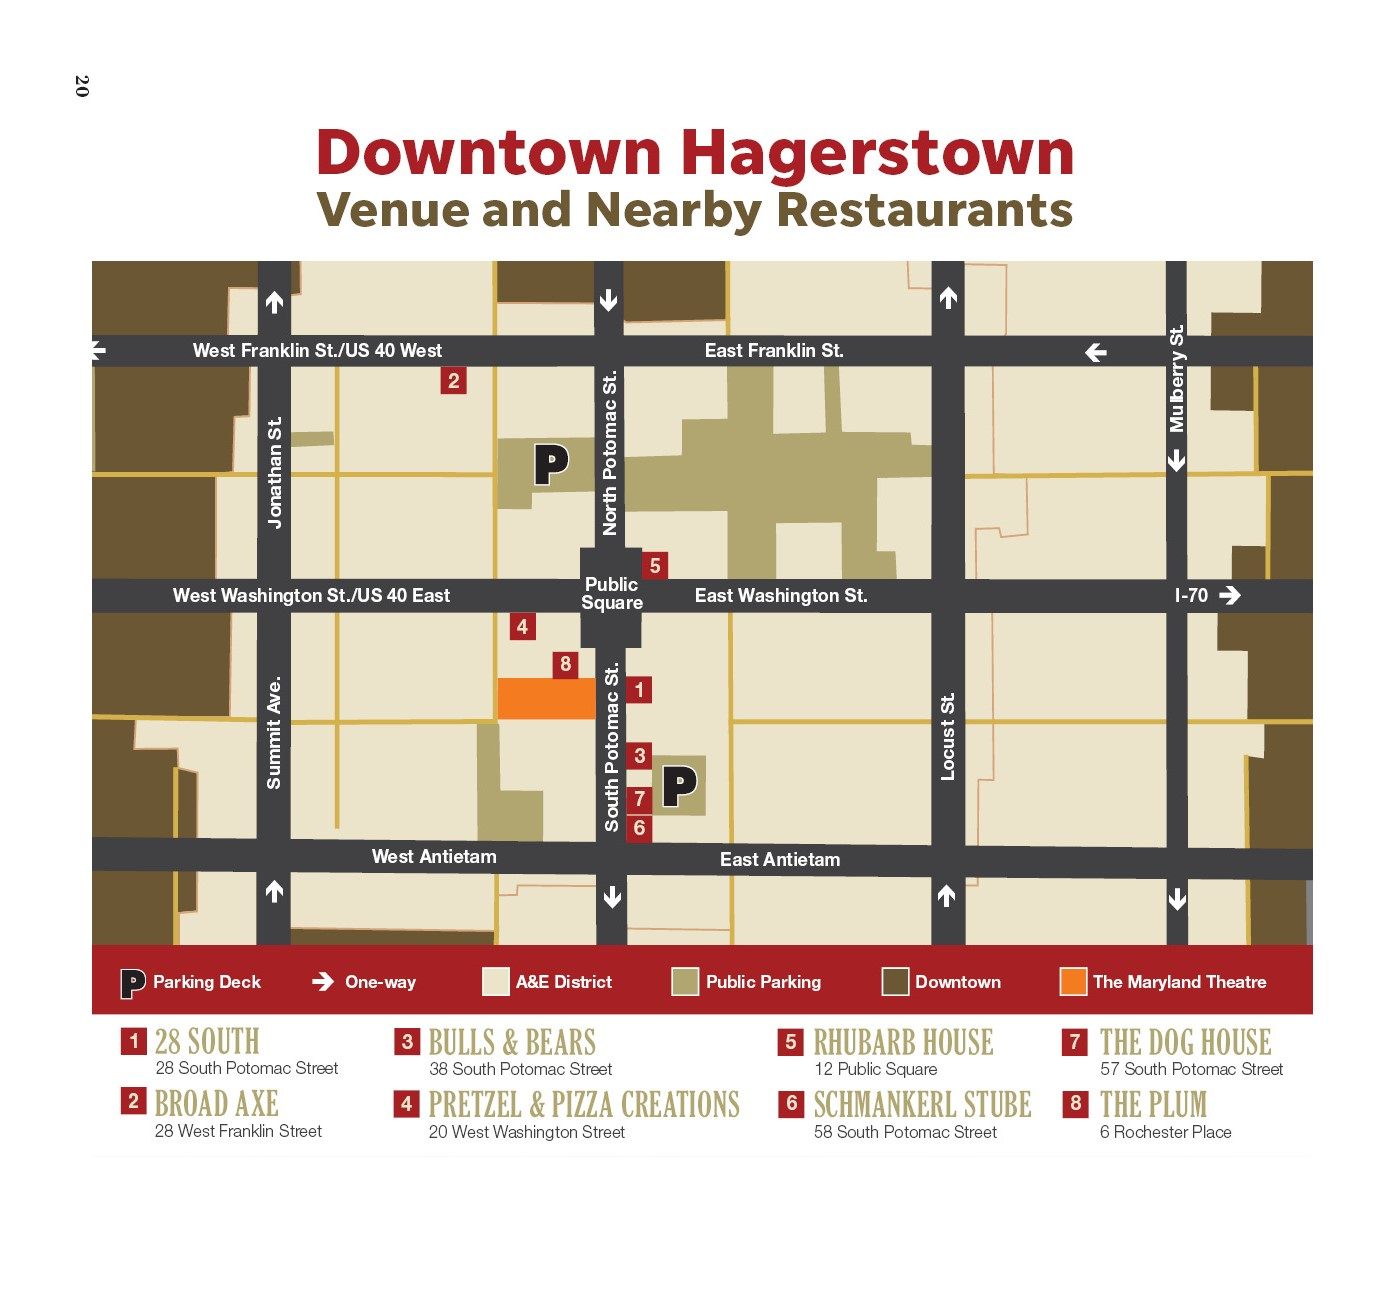 Hagerstown map, parking and restaurants